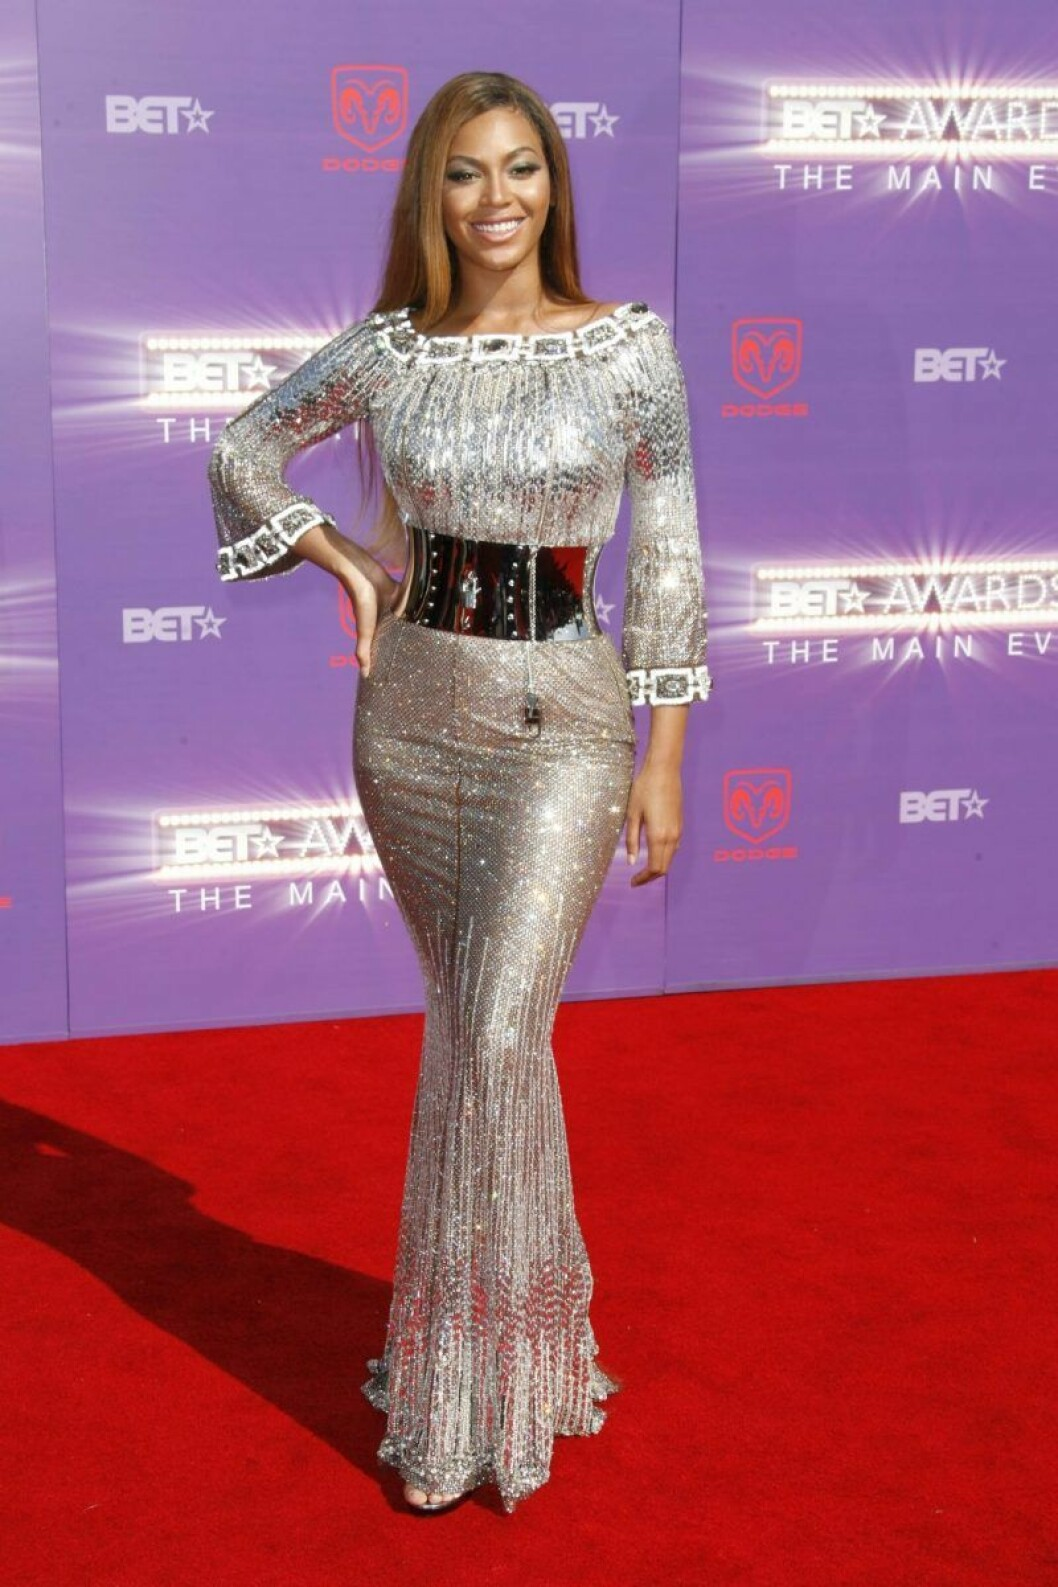 beyonce bet awards 2007